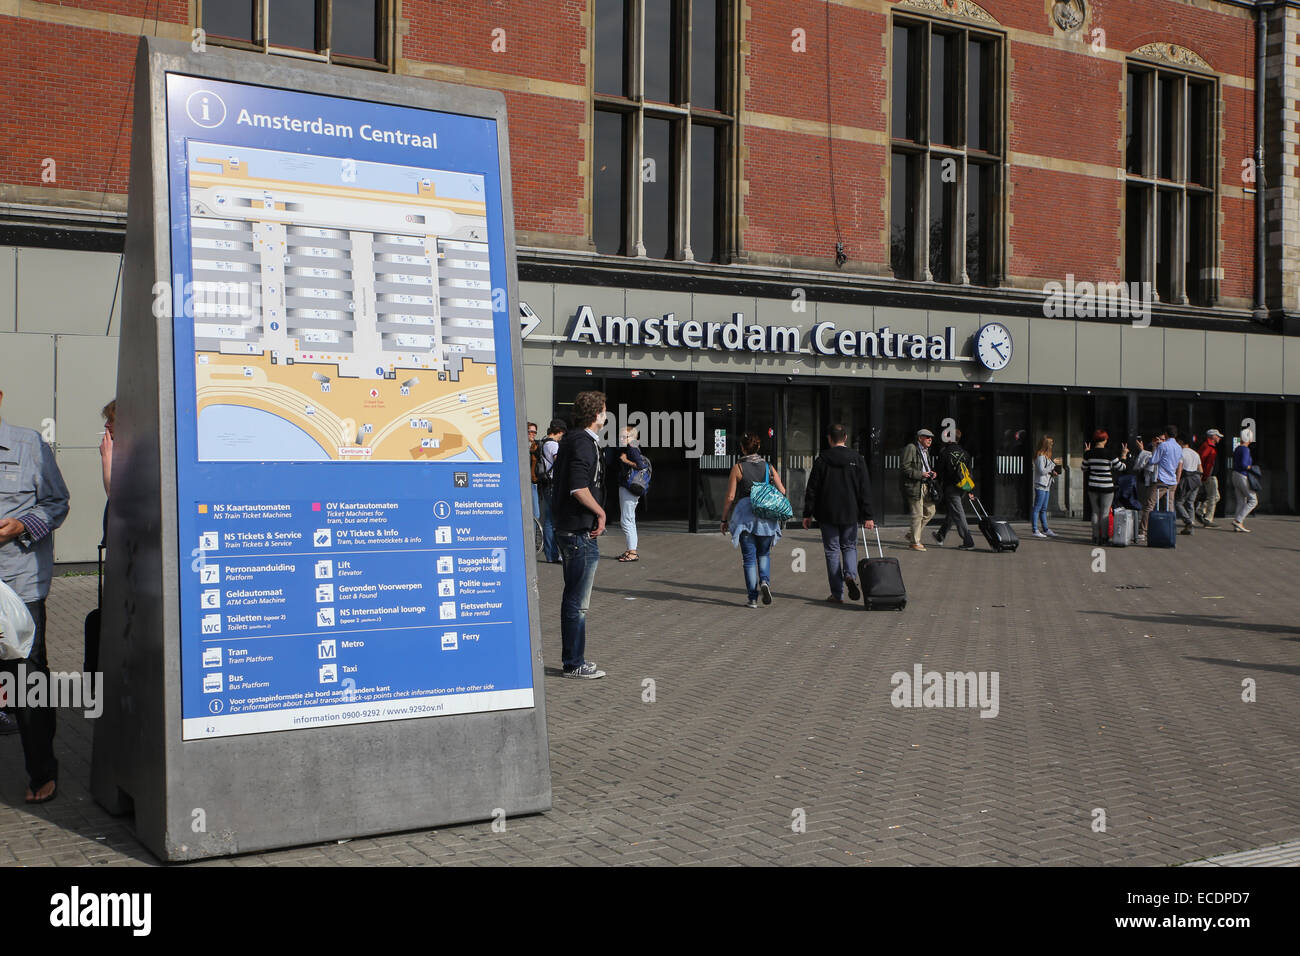 amsterdam centraal central train station map direction outdoor Stock